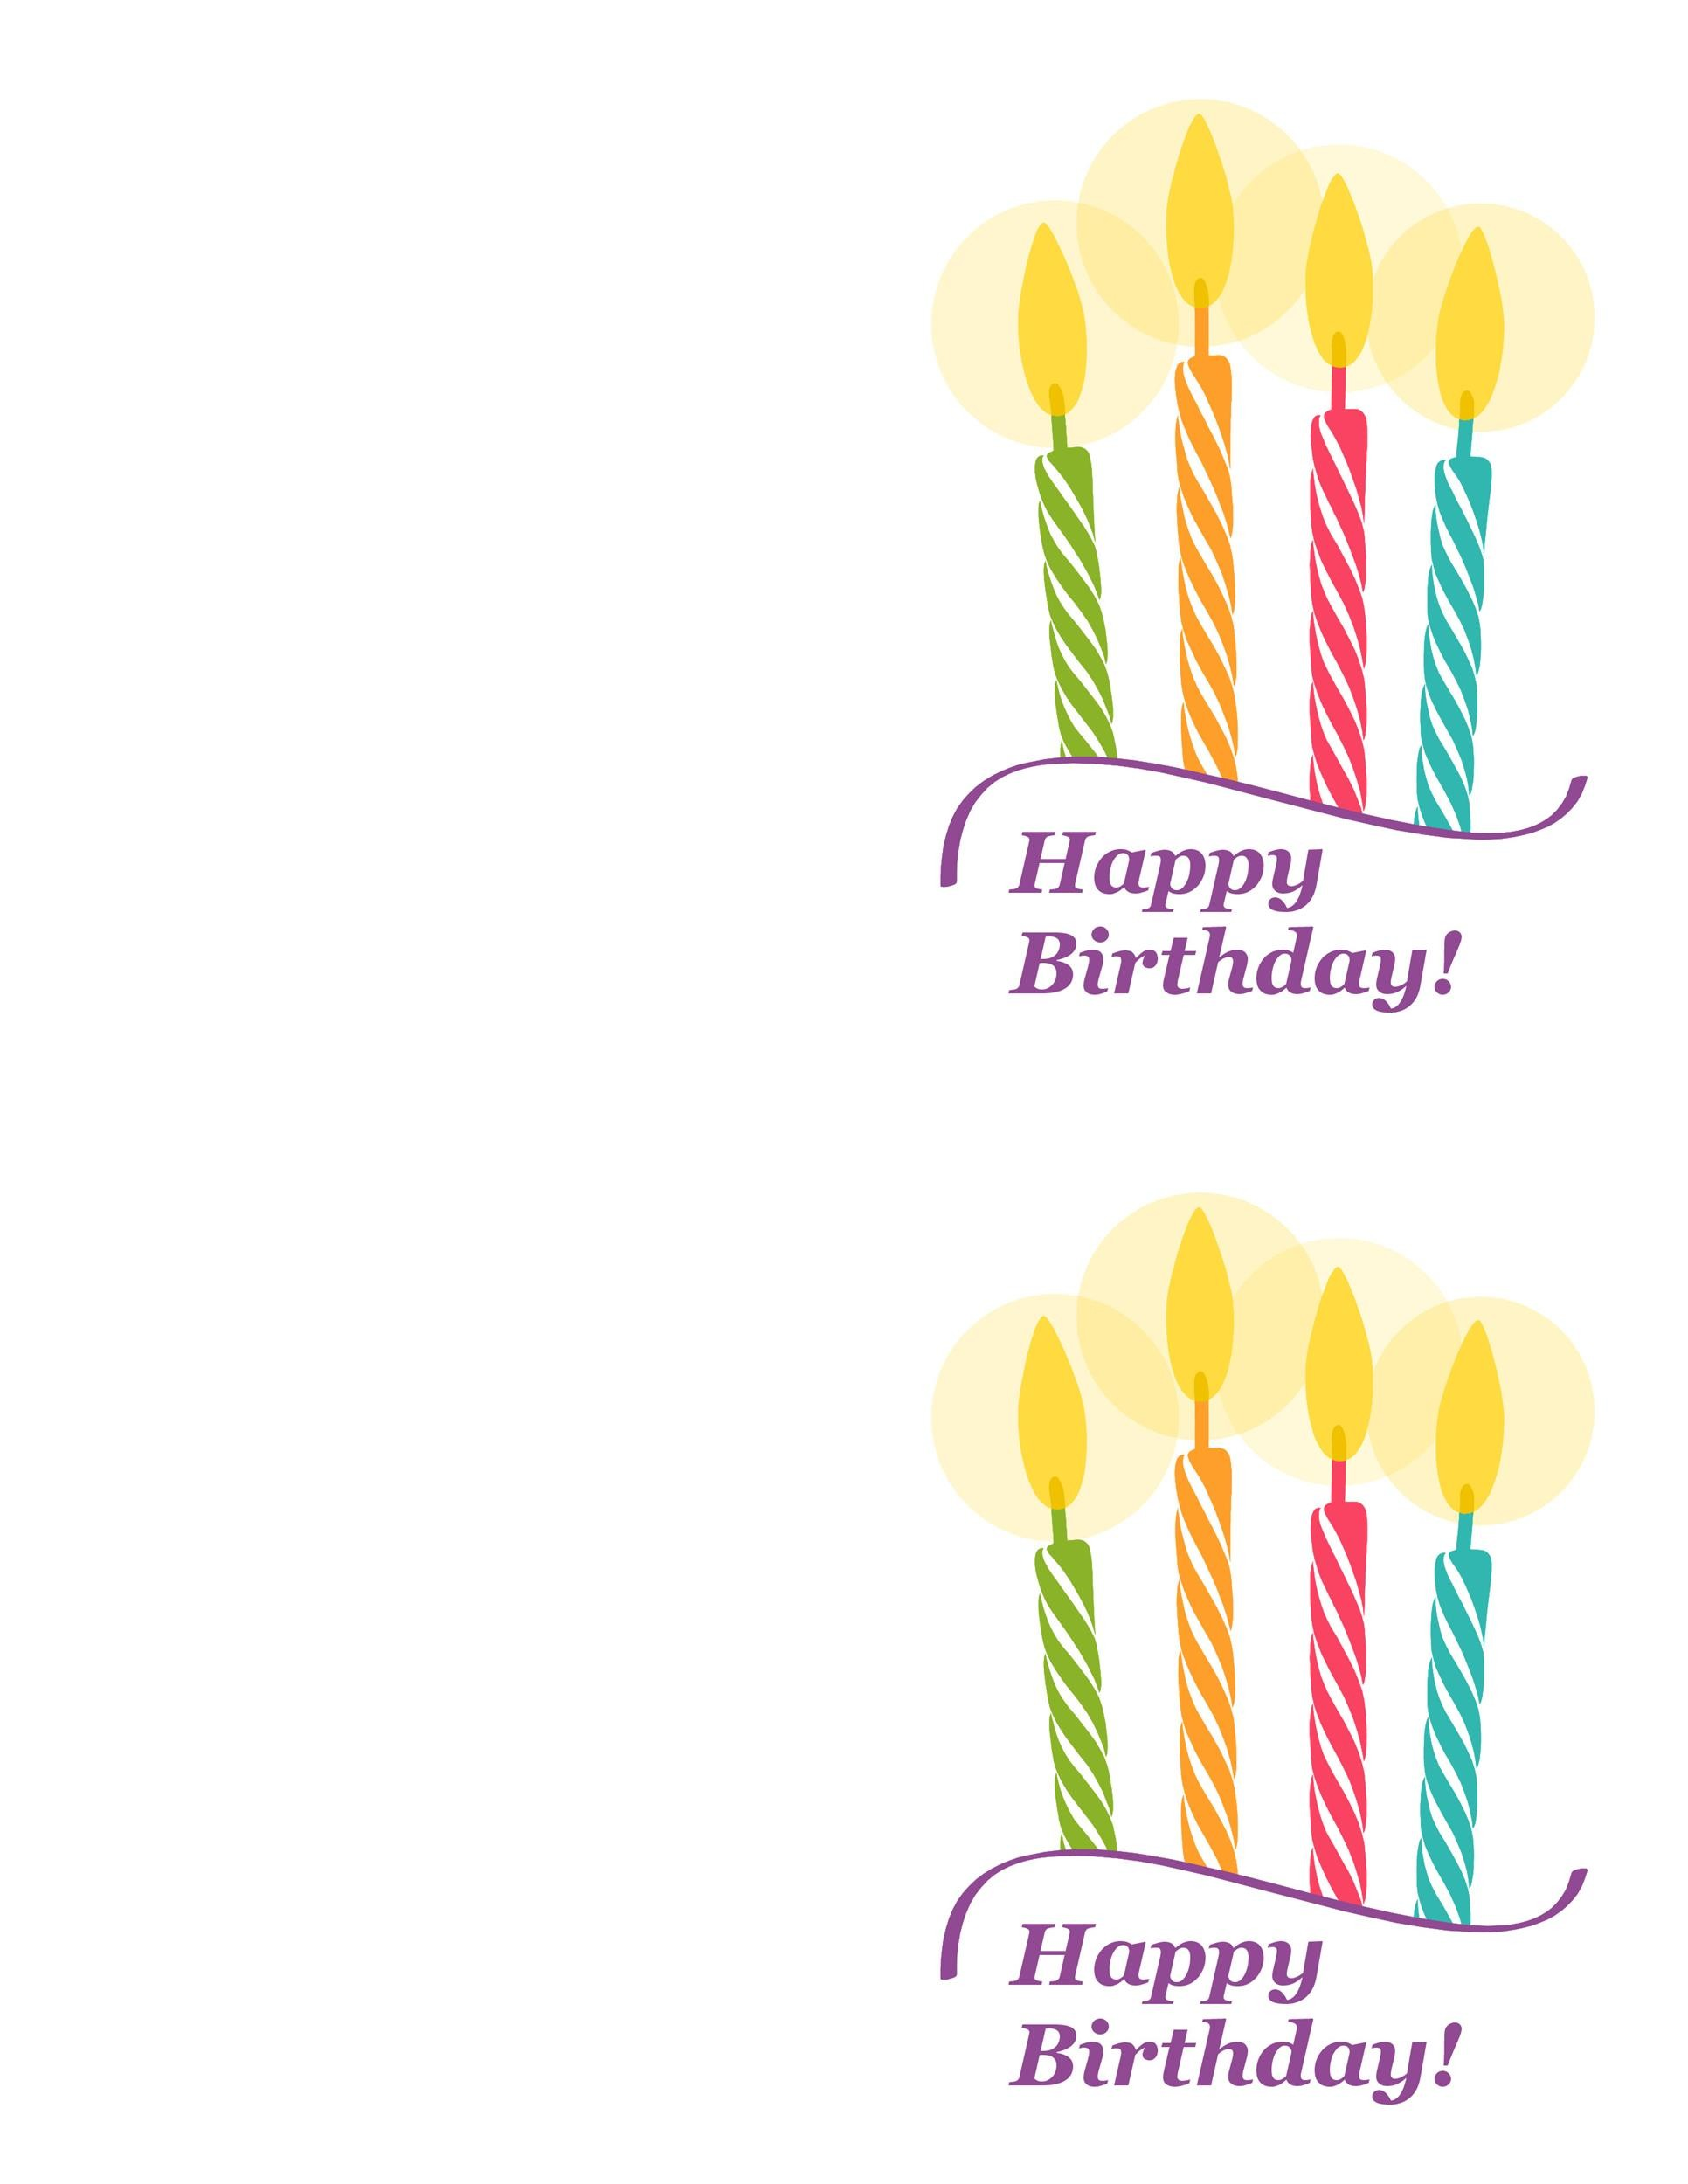 free birthday card template 21 - Free Birthday Templates